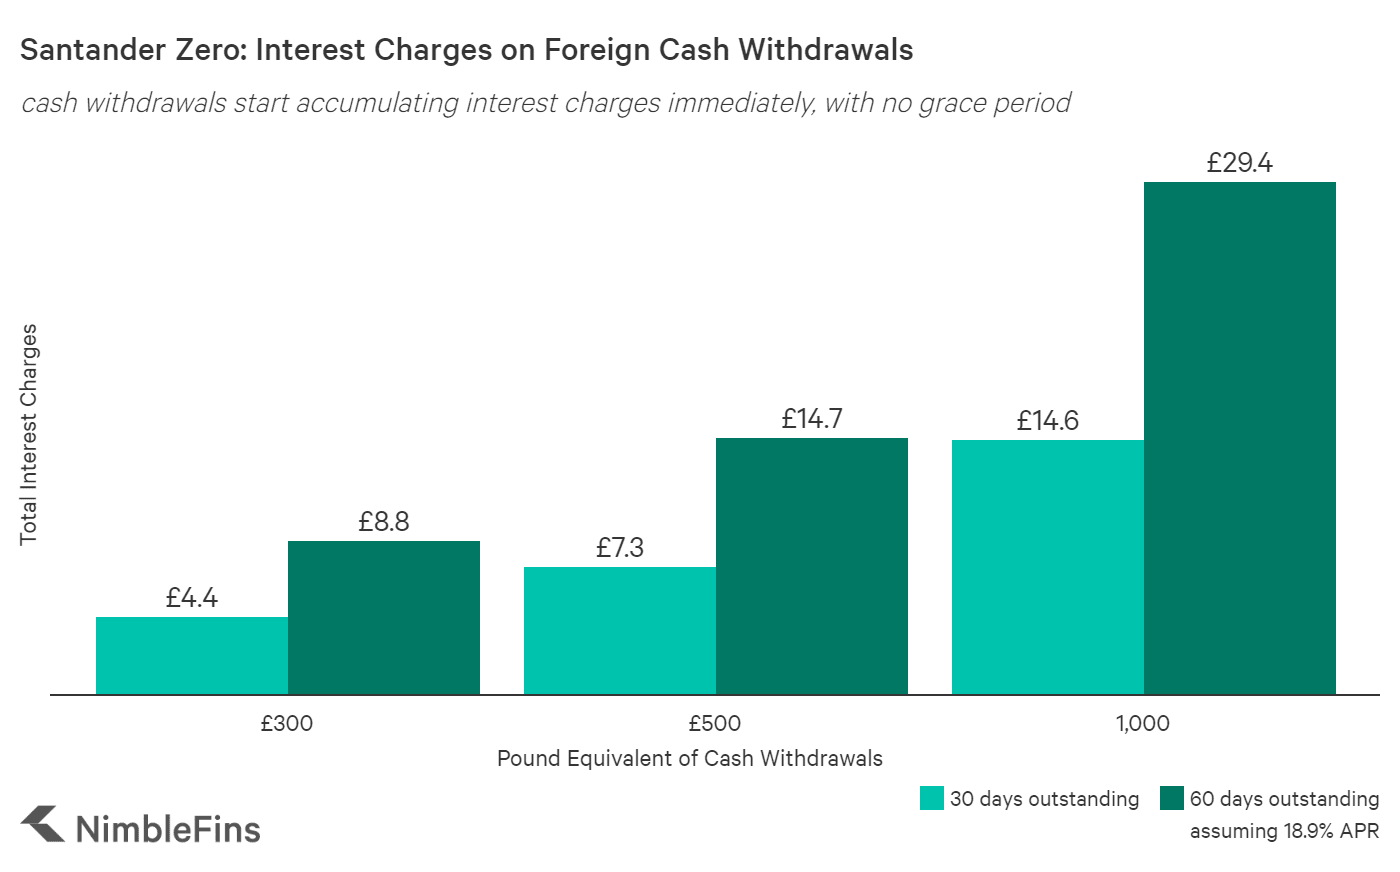 A graph comparing the interest costs on varying amounts of Foreign Currency Withdrawals on the Santander Zero Credit Card